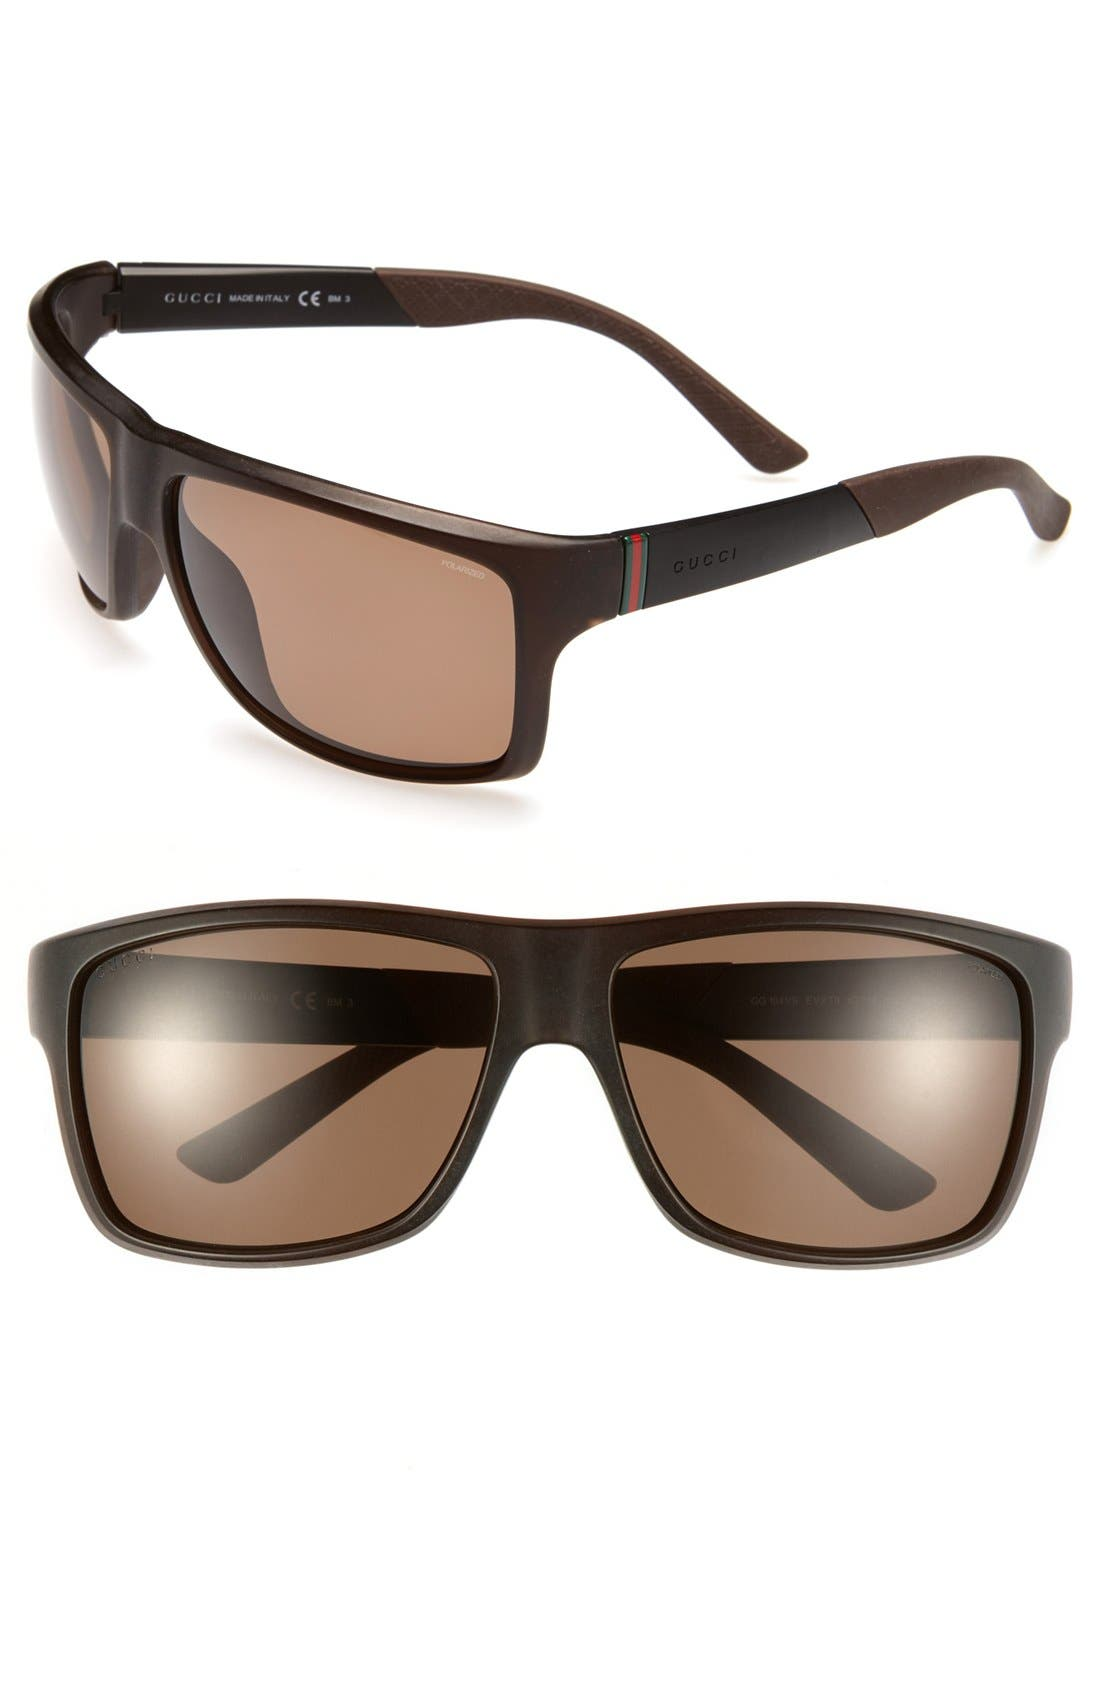 Main Image - Gucci 62mm Polarized Sunglasses